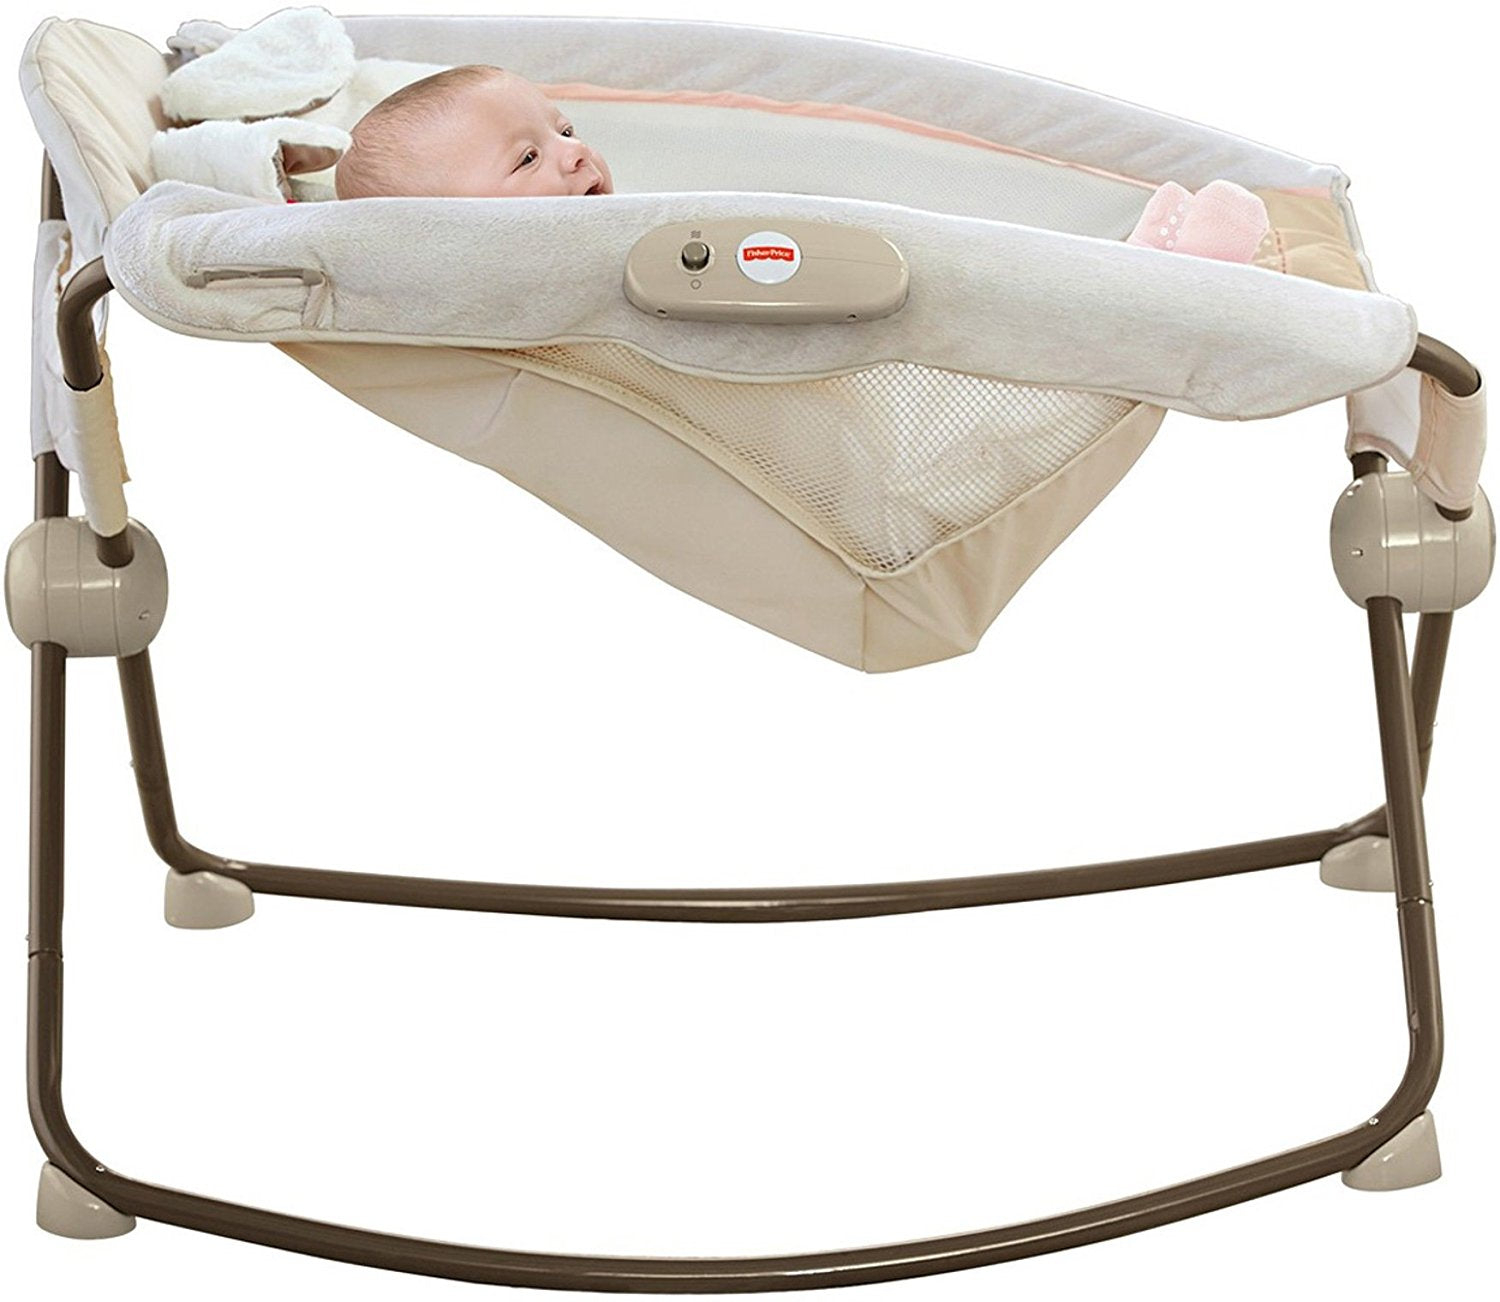 Fisher Price My Little Snugapuppy Deluxe Newborn Rock N Play Sleepe You Are My Everything Yame Inc